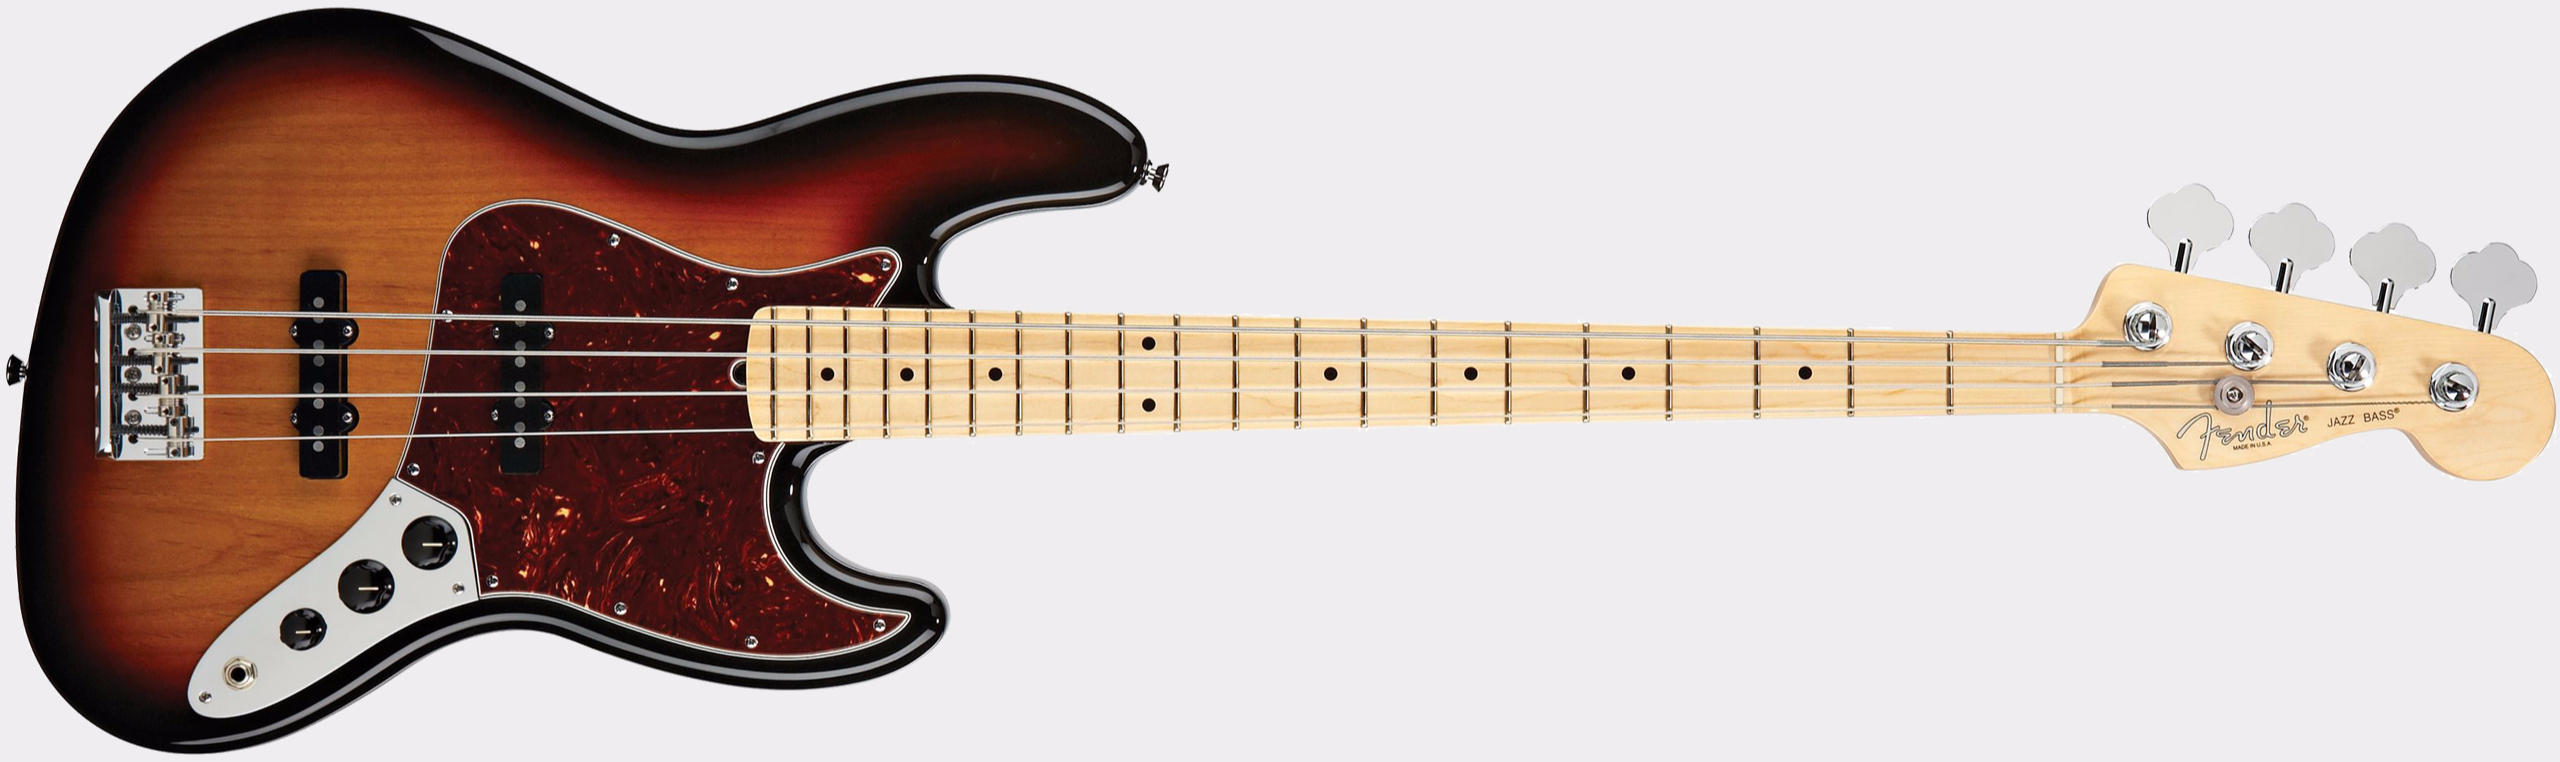 FENDER American Standard Jazz Bass MN 3-Color Sunburst